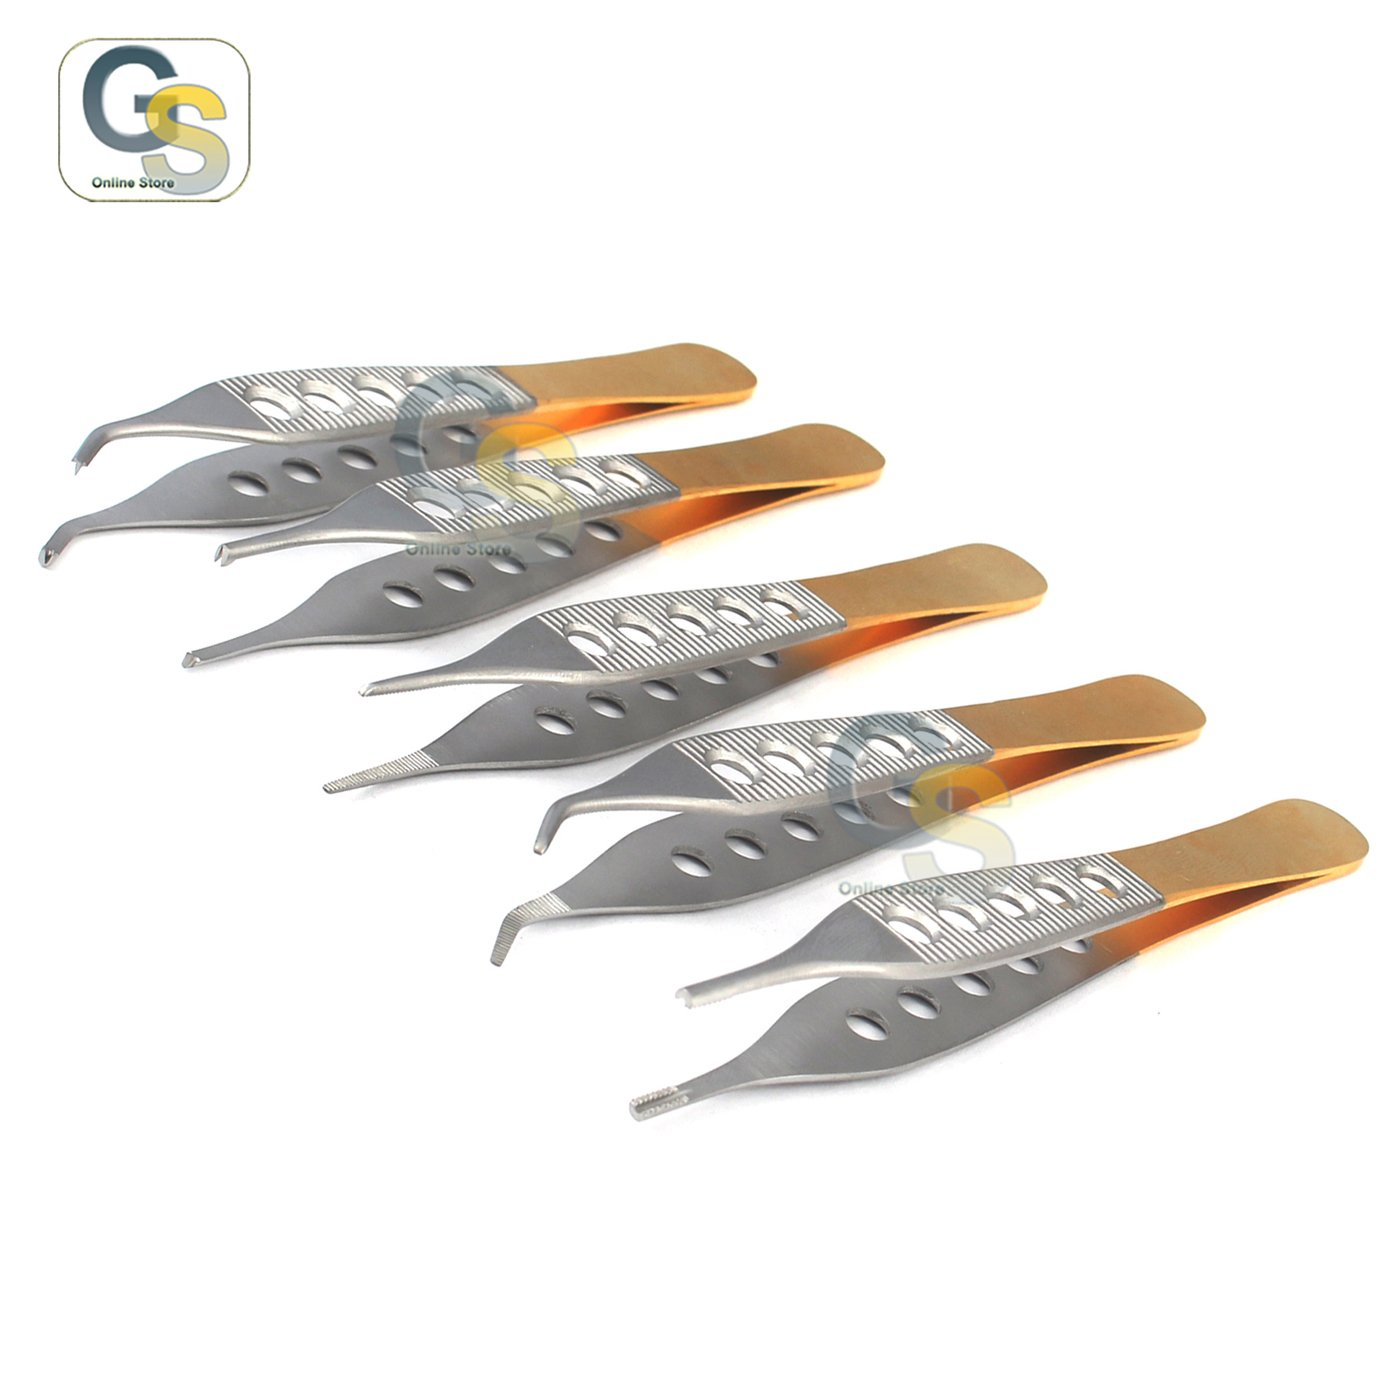 G.S NEW SET OF 5 PCS ADSON MICRO PLASTIC SURG FORCEPS INSTRUMENTS W/ FENESTRATED HANDLE BEST QUALITY by G.S ONLINE STORE (Image #3)